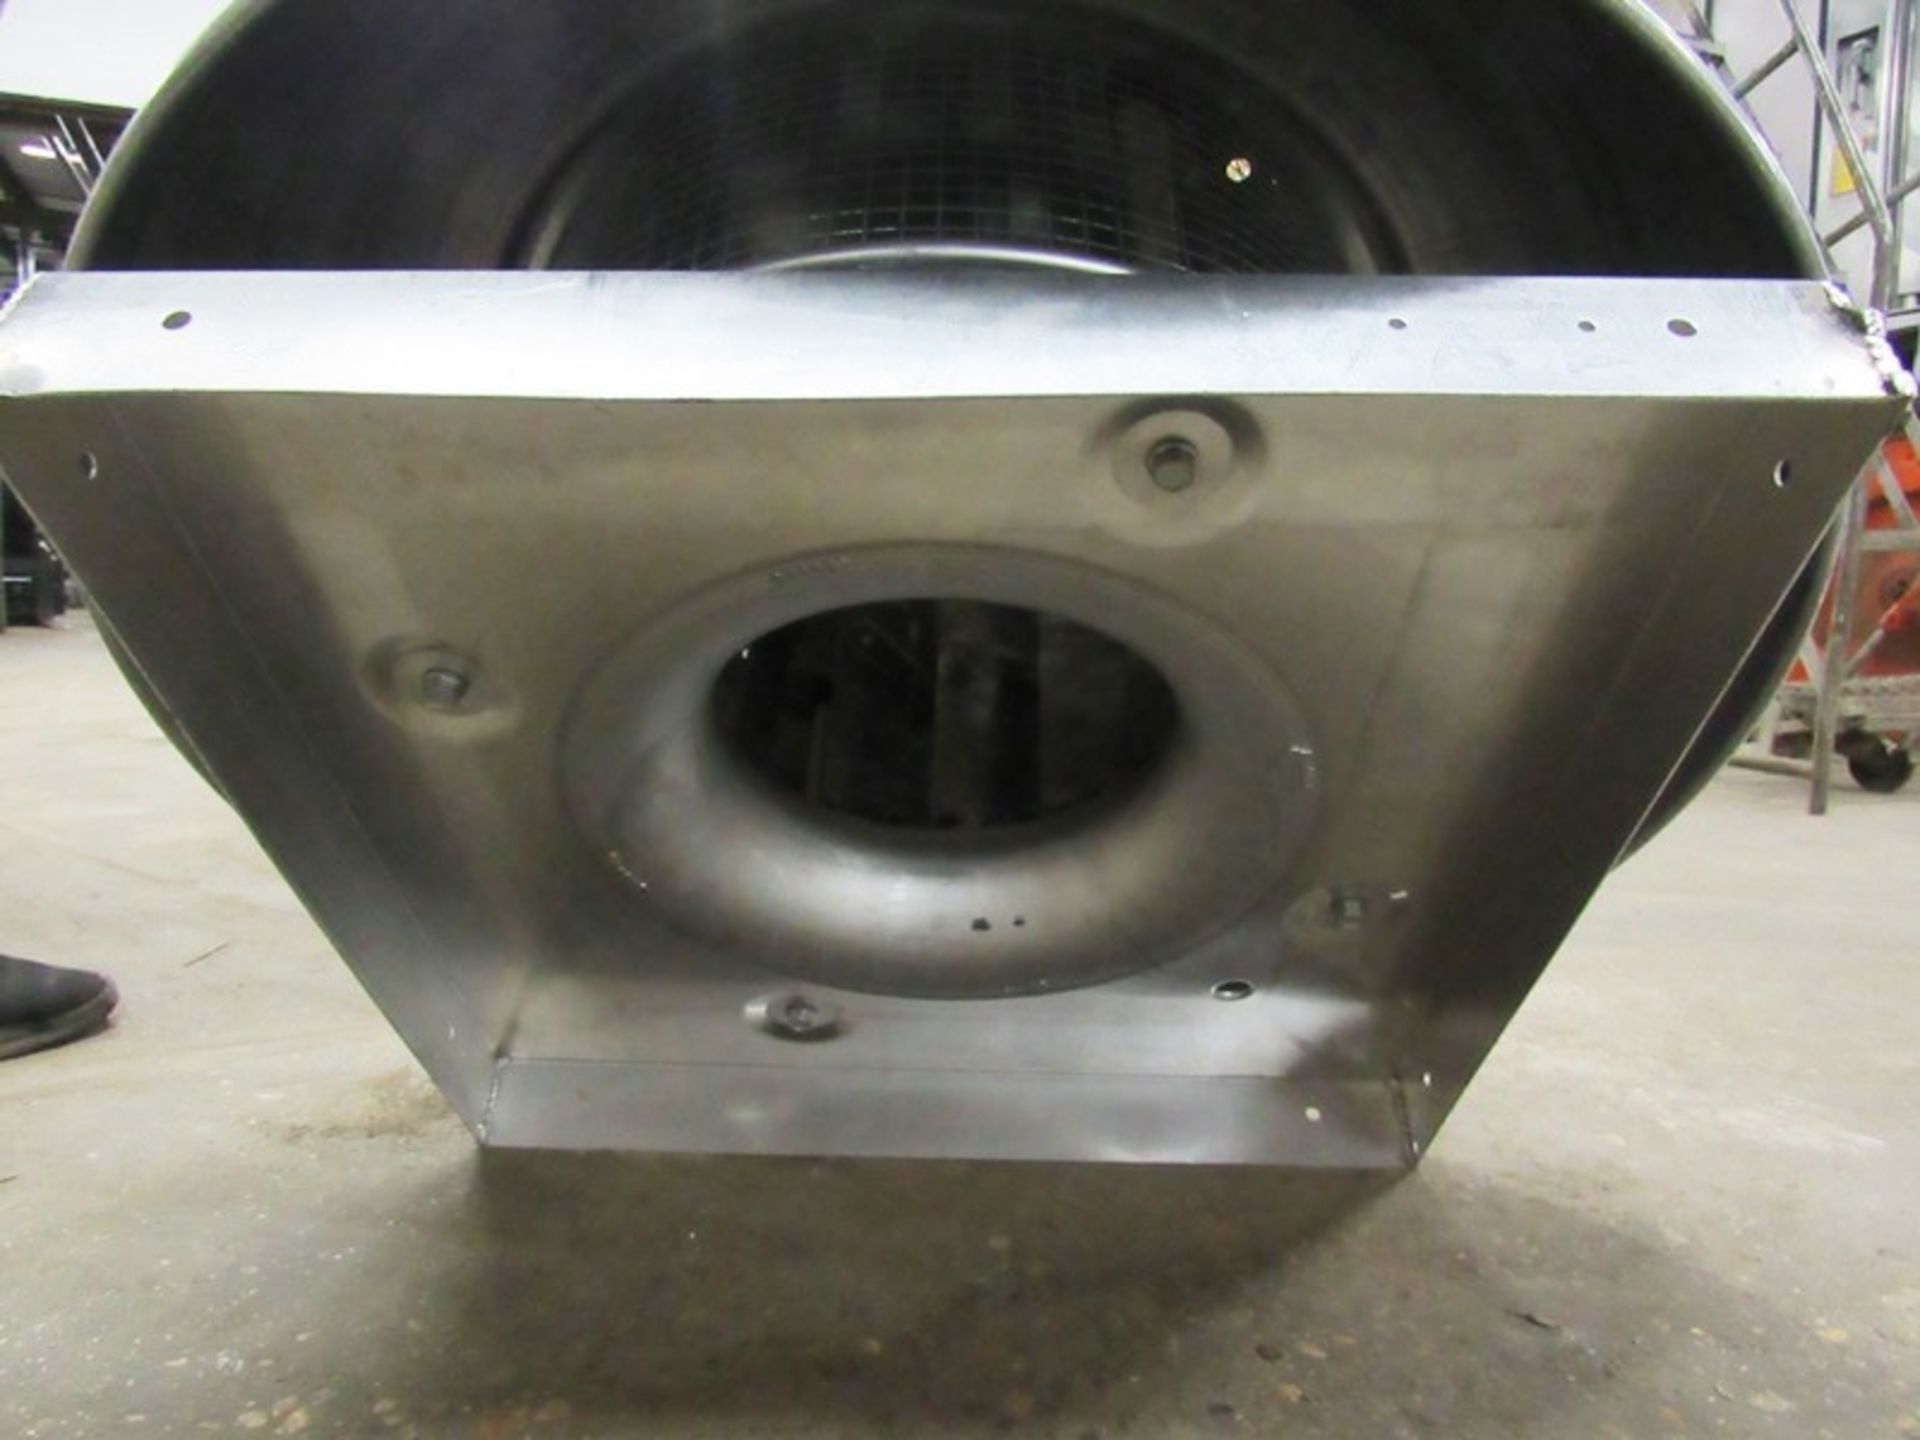 Cook Mdl. 120ACE120C13D Exhaust Fan, Ser. #012SG32092/01/0001801, H.P.0.250, 115 volts, ENCL:ODP, - Image 4 of 7